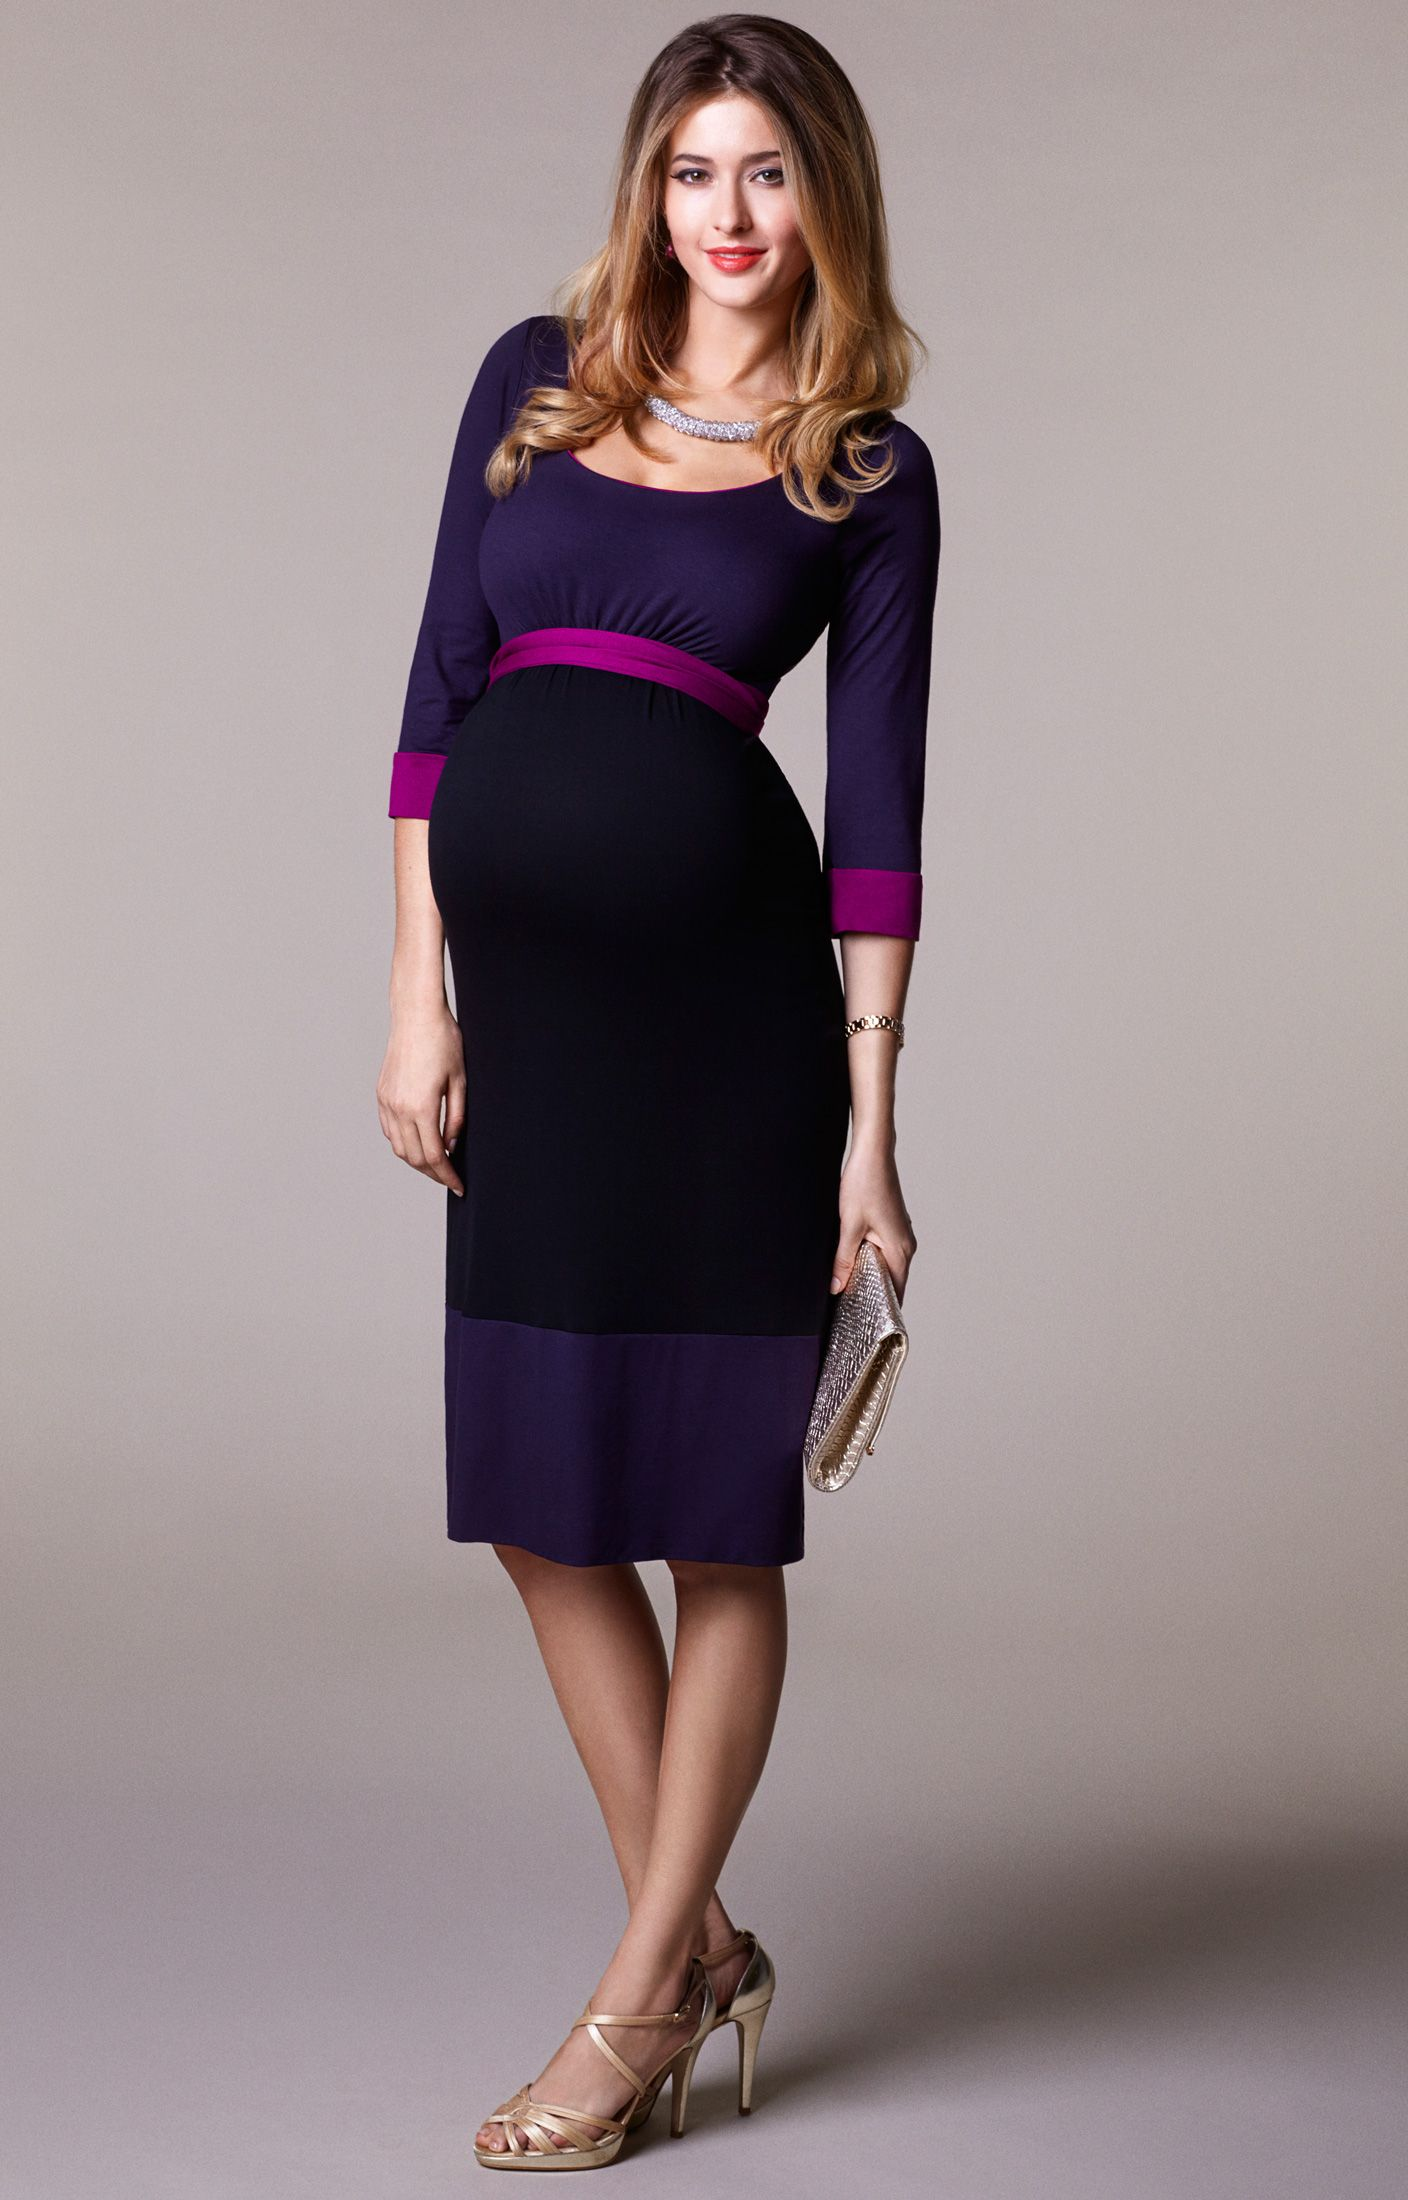 Colour block dress tiffany rose maternity dresses and color colour block maternity dress purple by tiffany rose ombrellifo Image collections